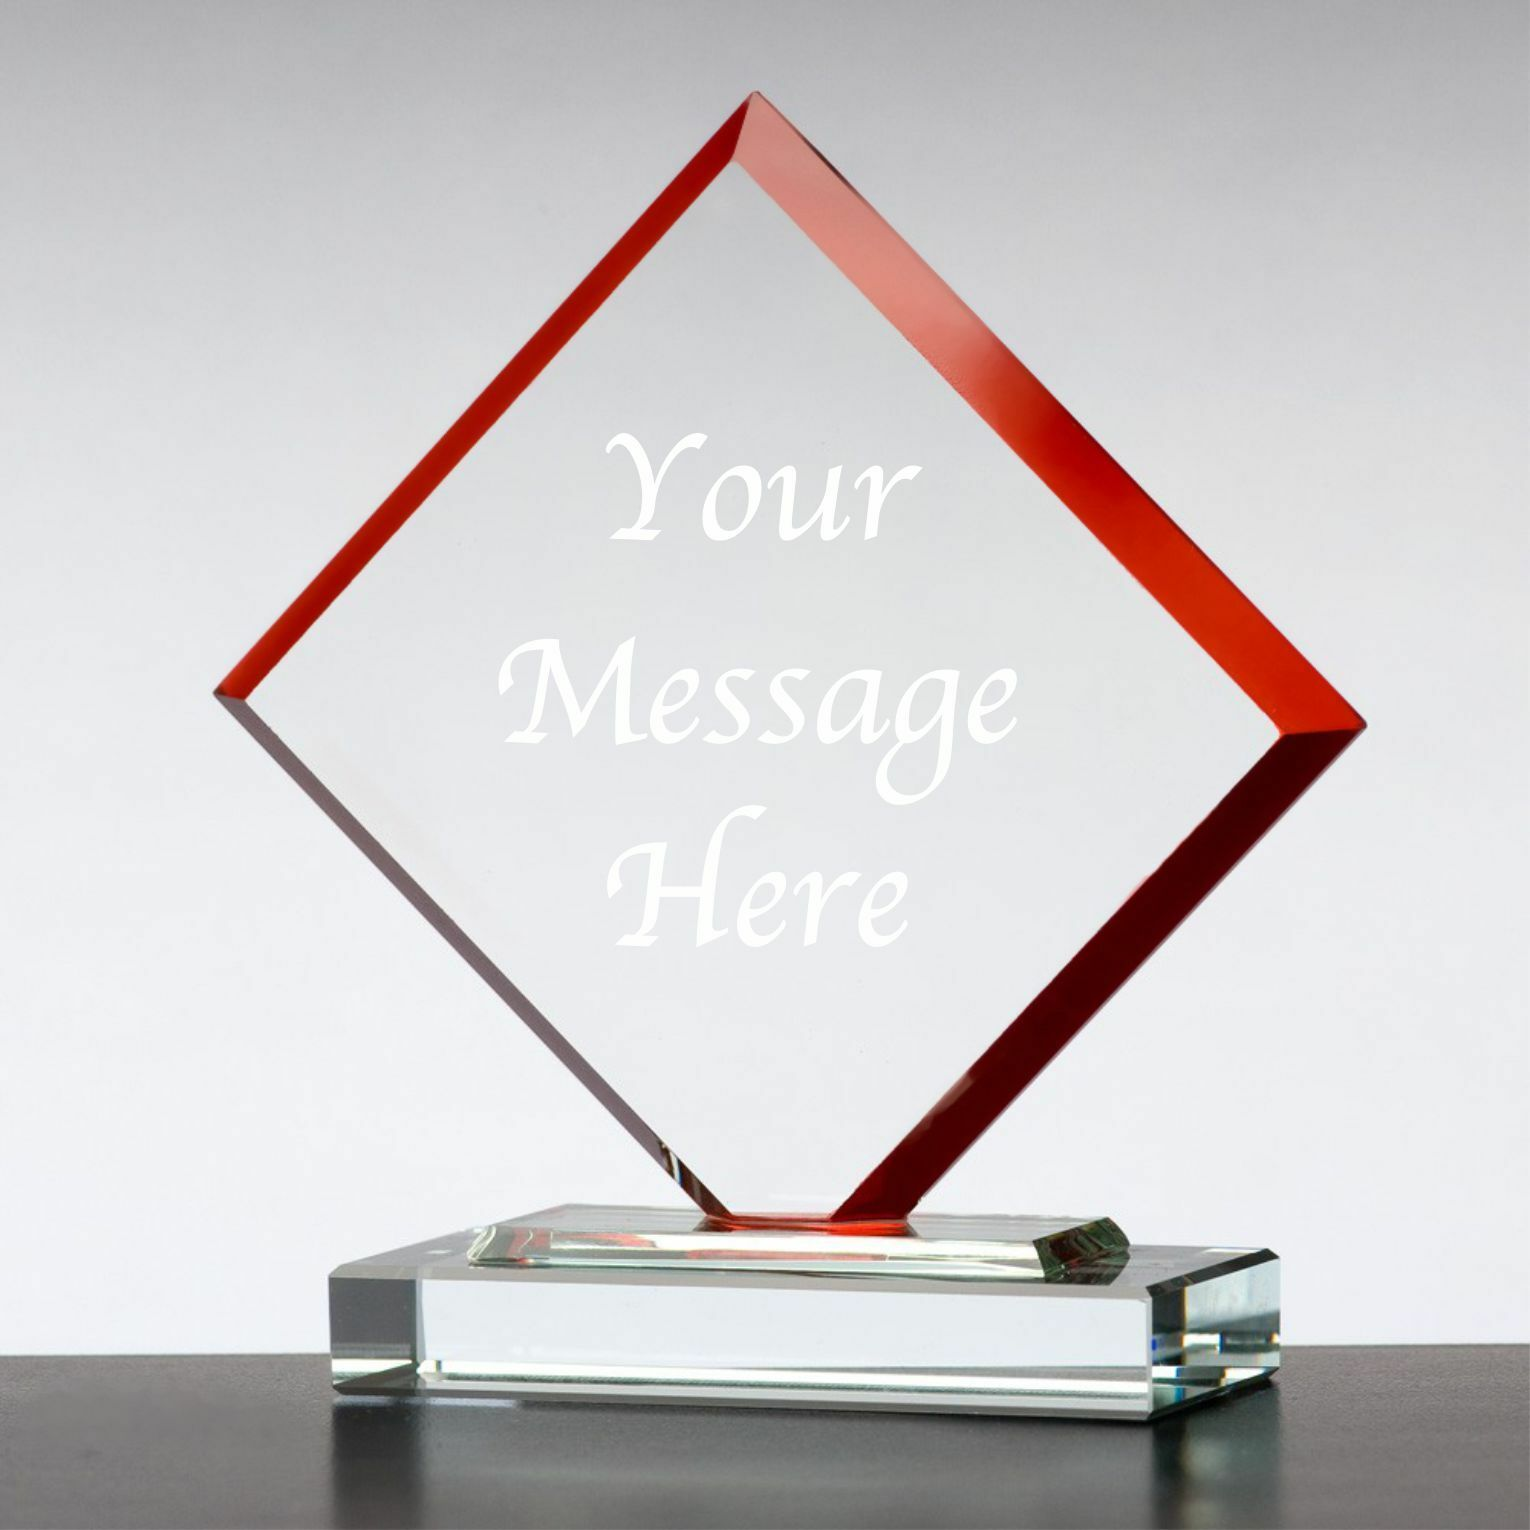 Personalised Engraved Glass Red Cube Trophy Award - Corporate Staff Recognition